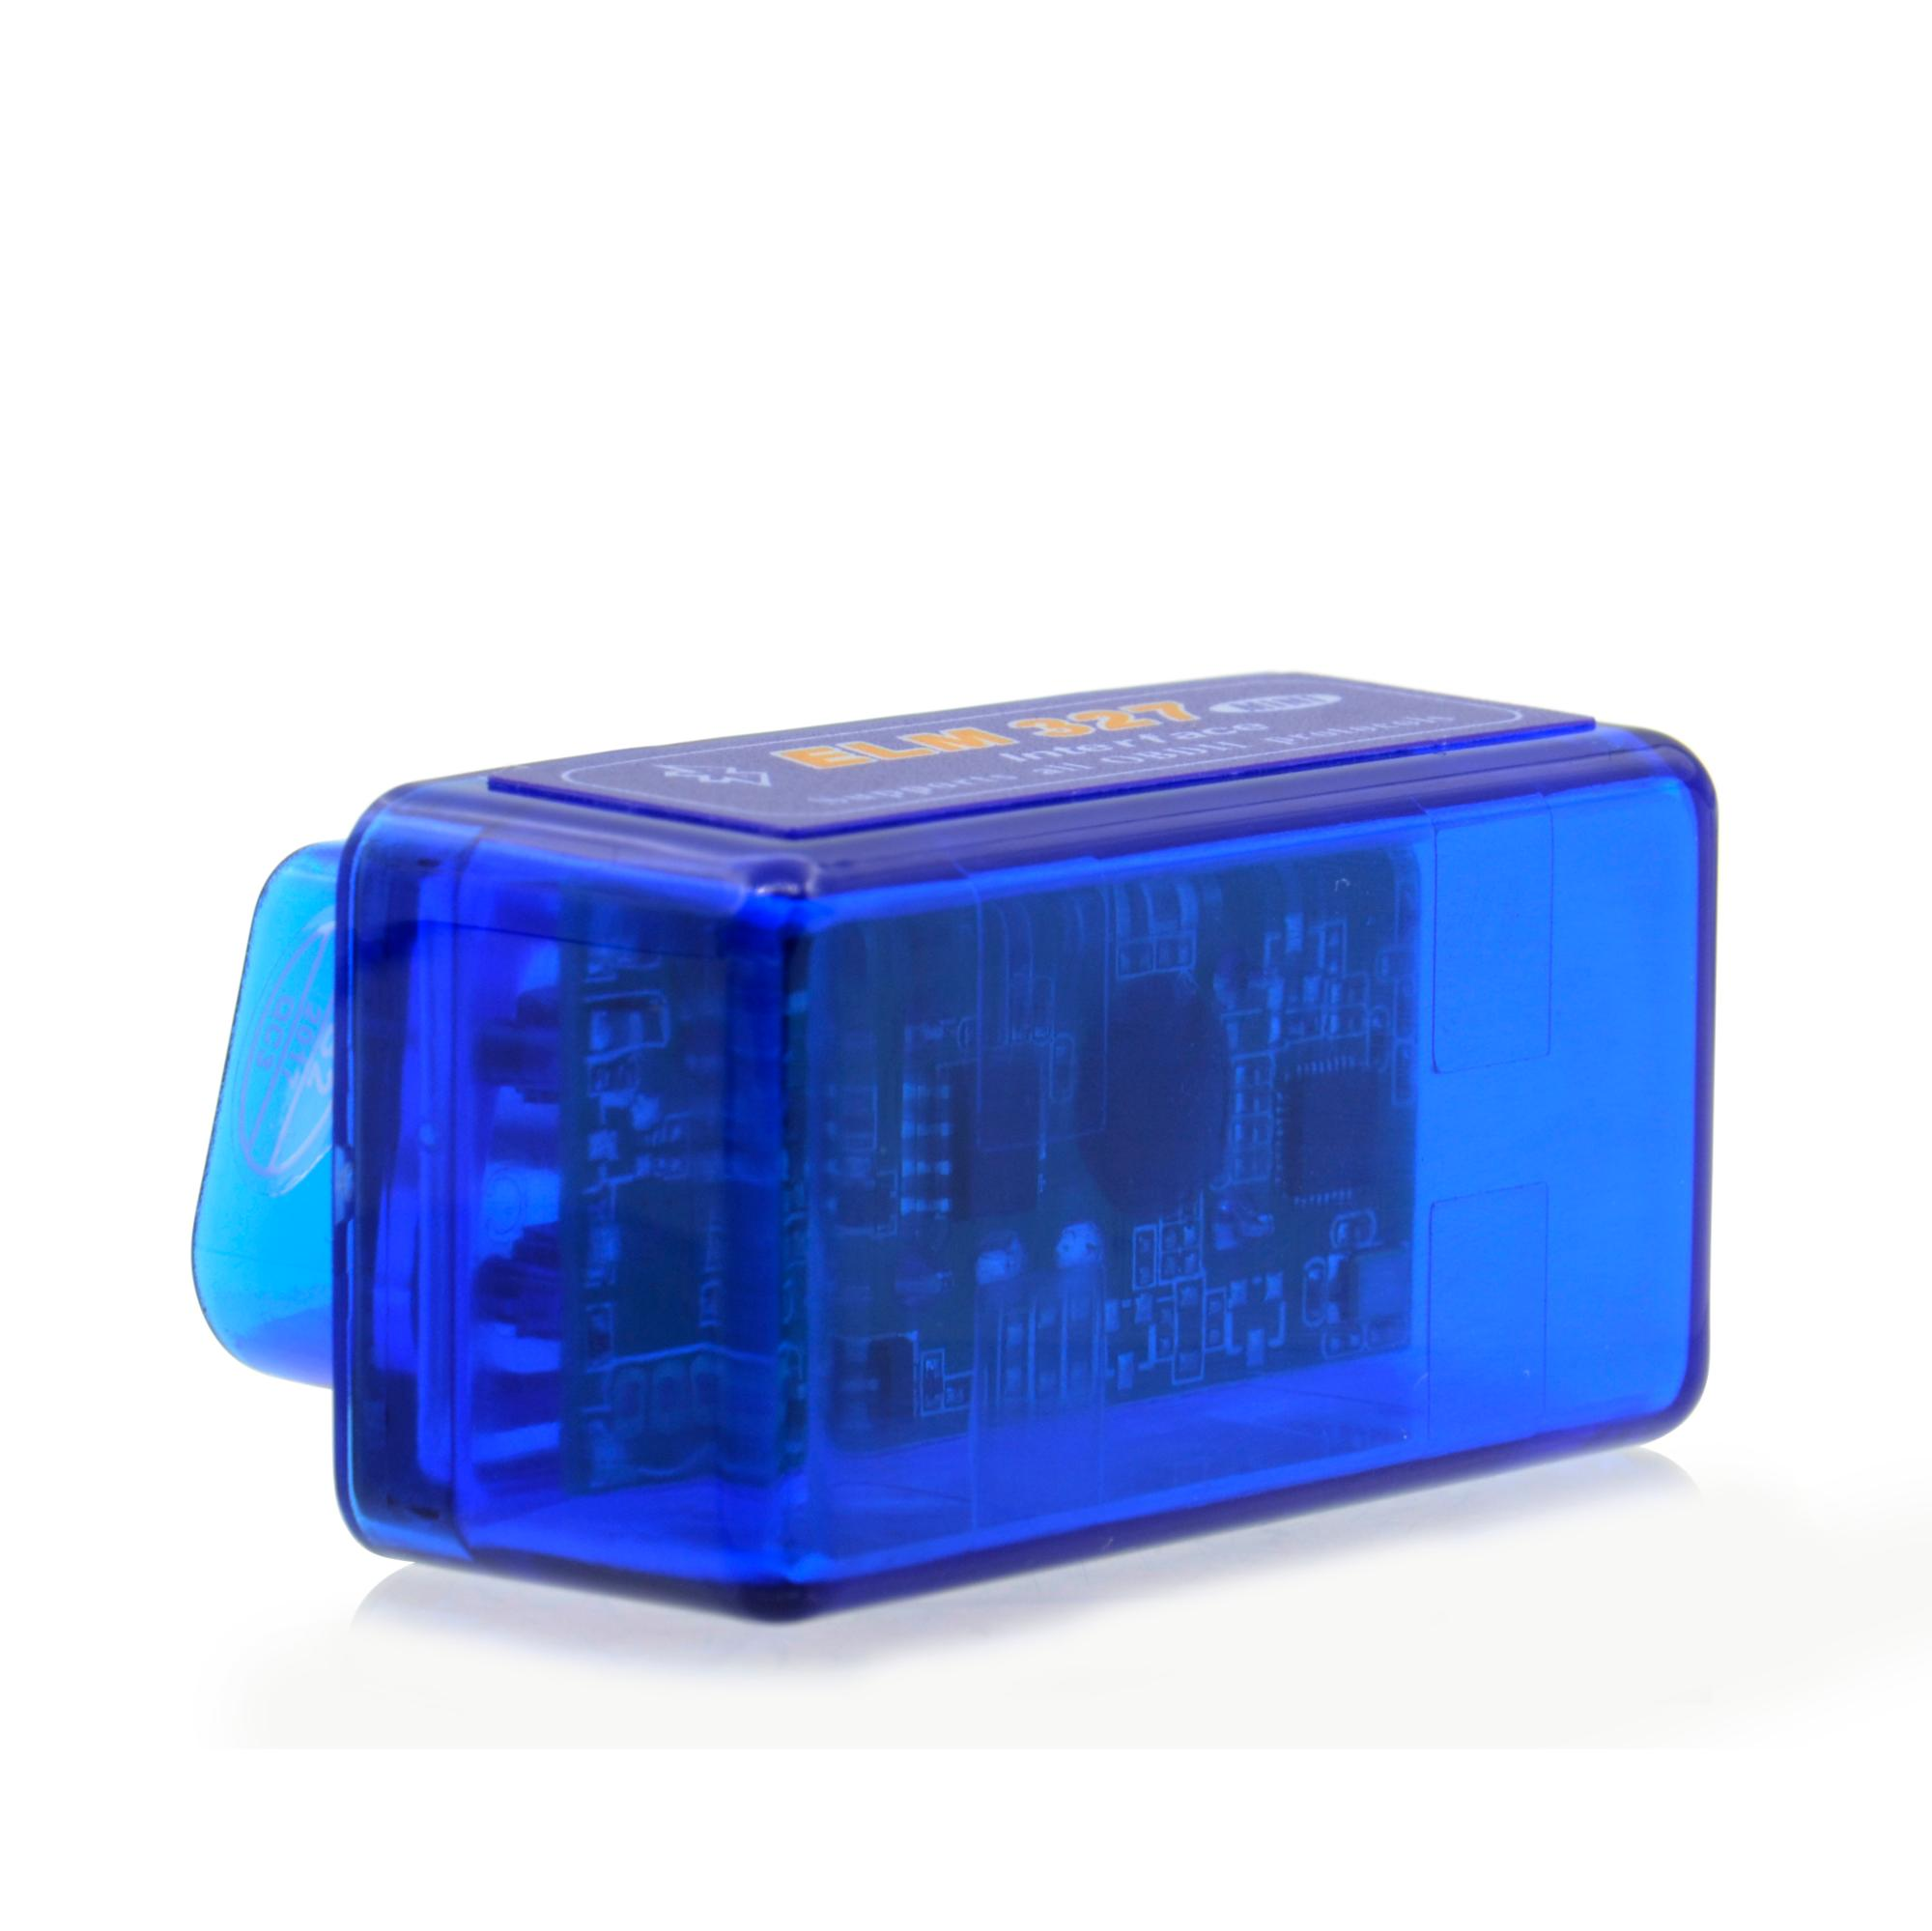 Mini ELM327 Auto Scanner OLMO 327 Bluetooth OBD2 per Android Torque OBDII V2.1 Veicolo Scan Strumento Diagnostico Dell'automobile